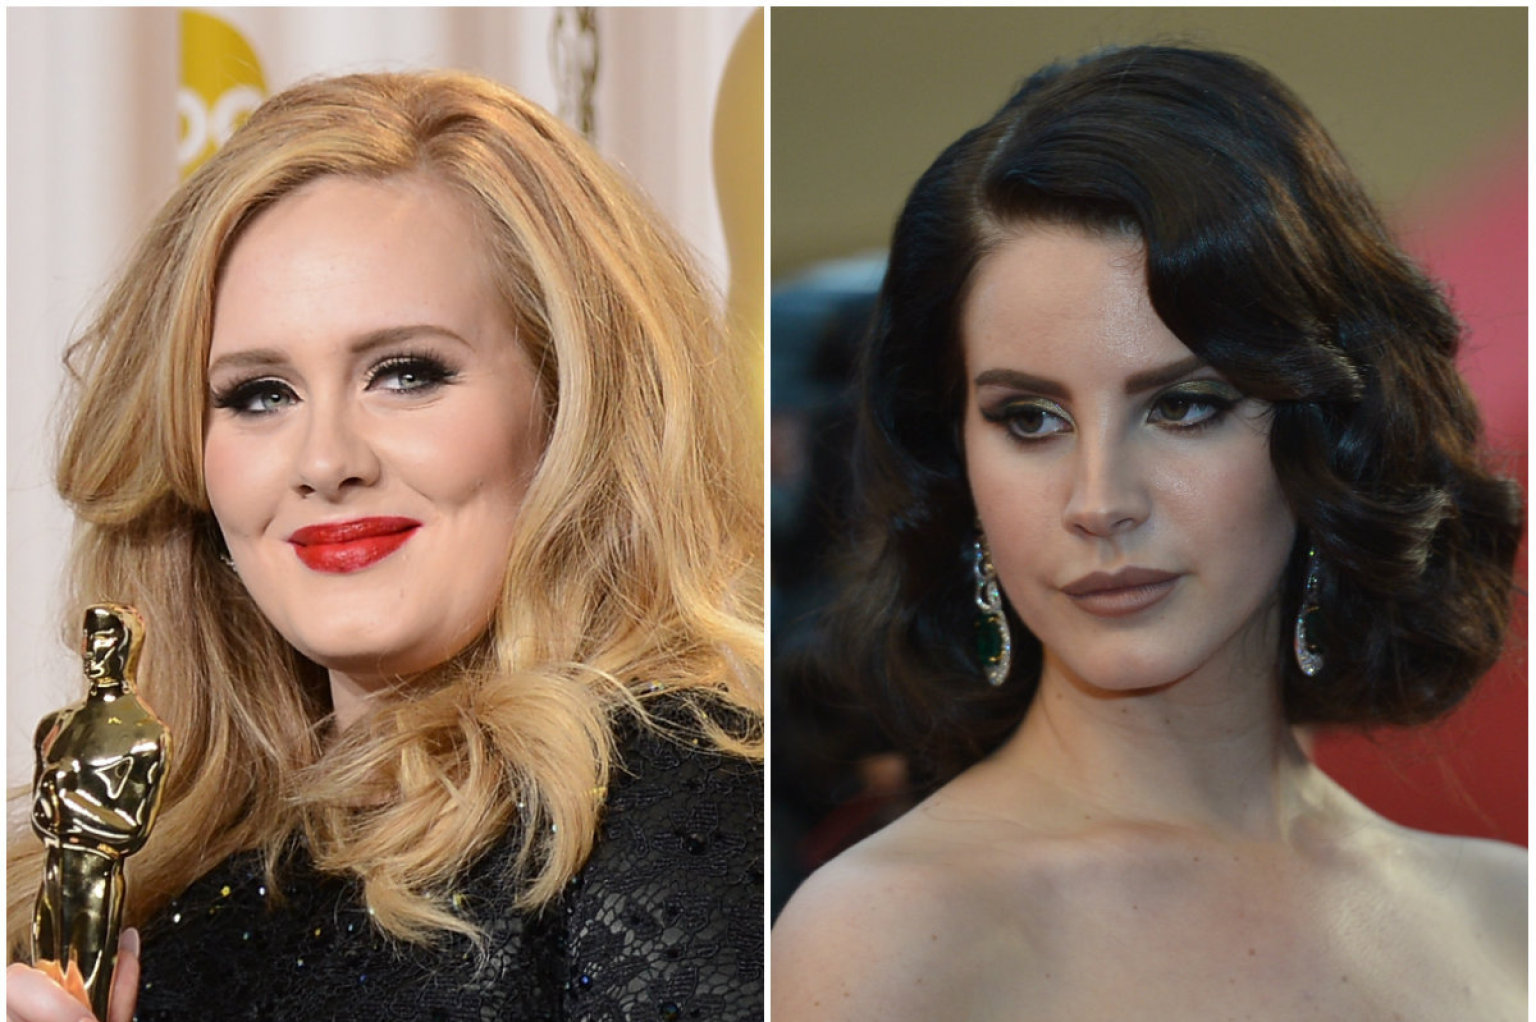 Adele S Tattoo Matches Lana Del Rey S Photos Ideas And Designs